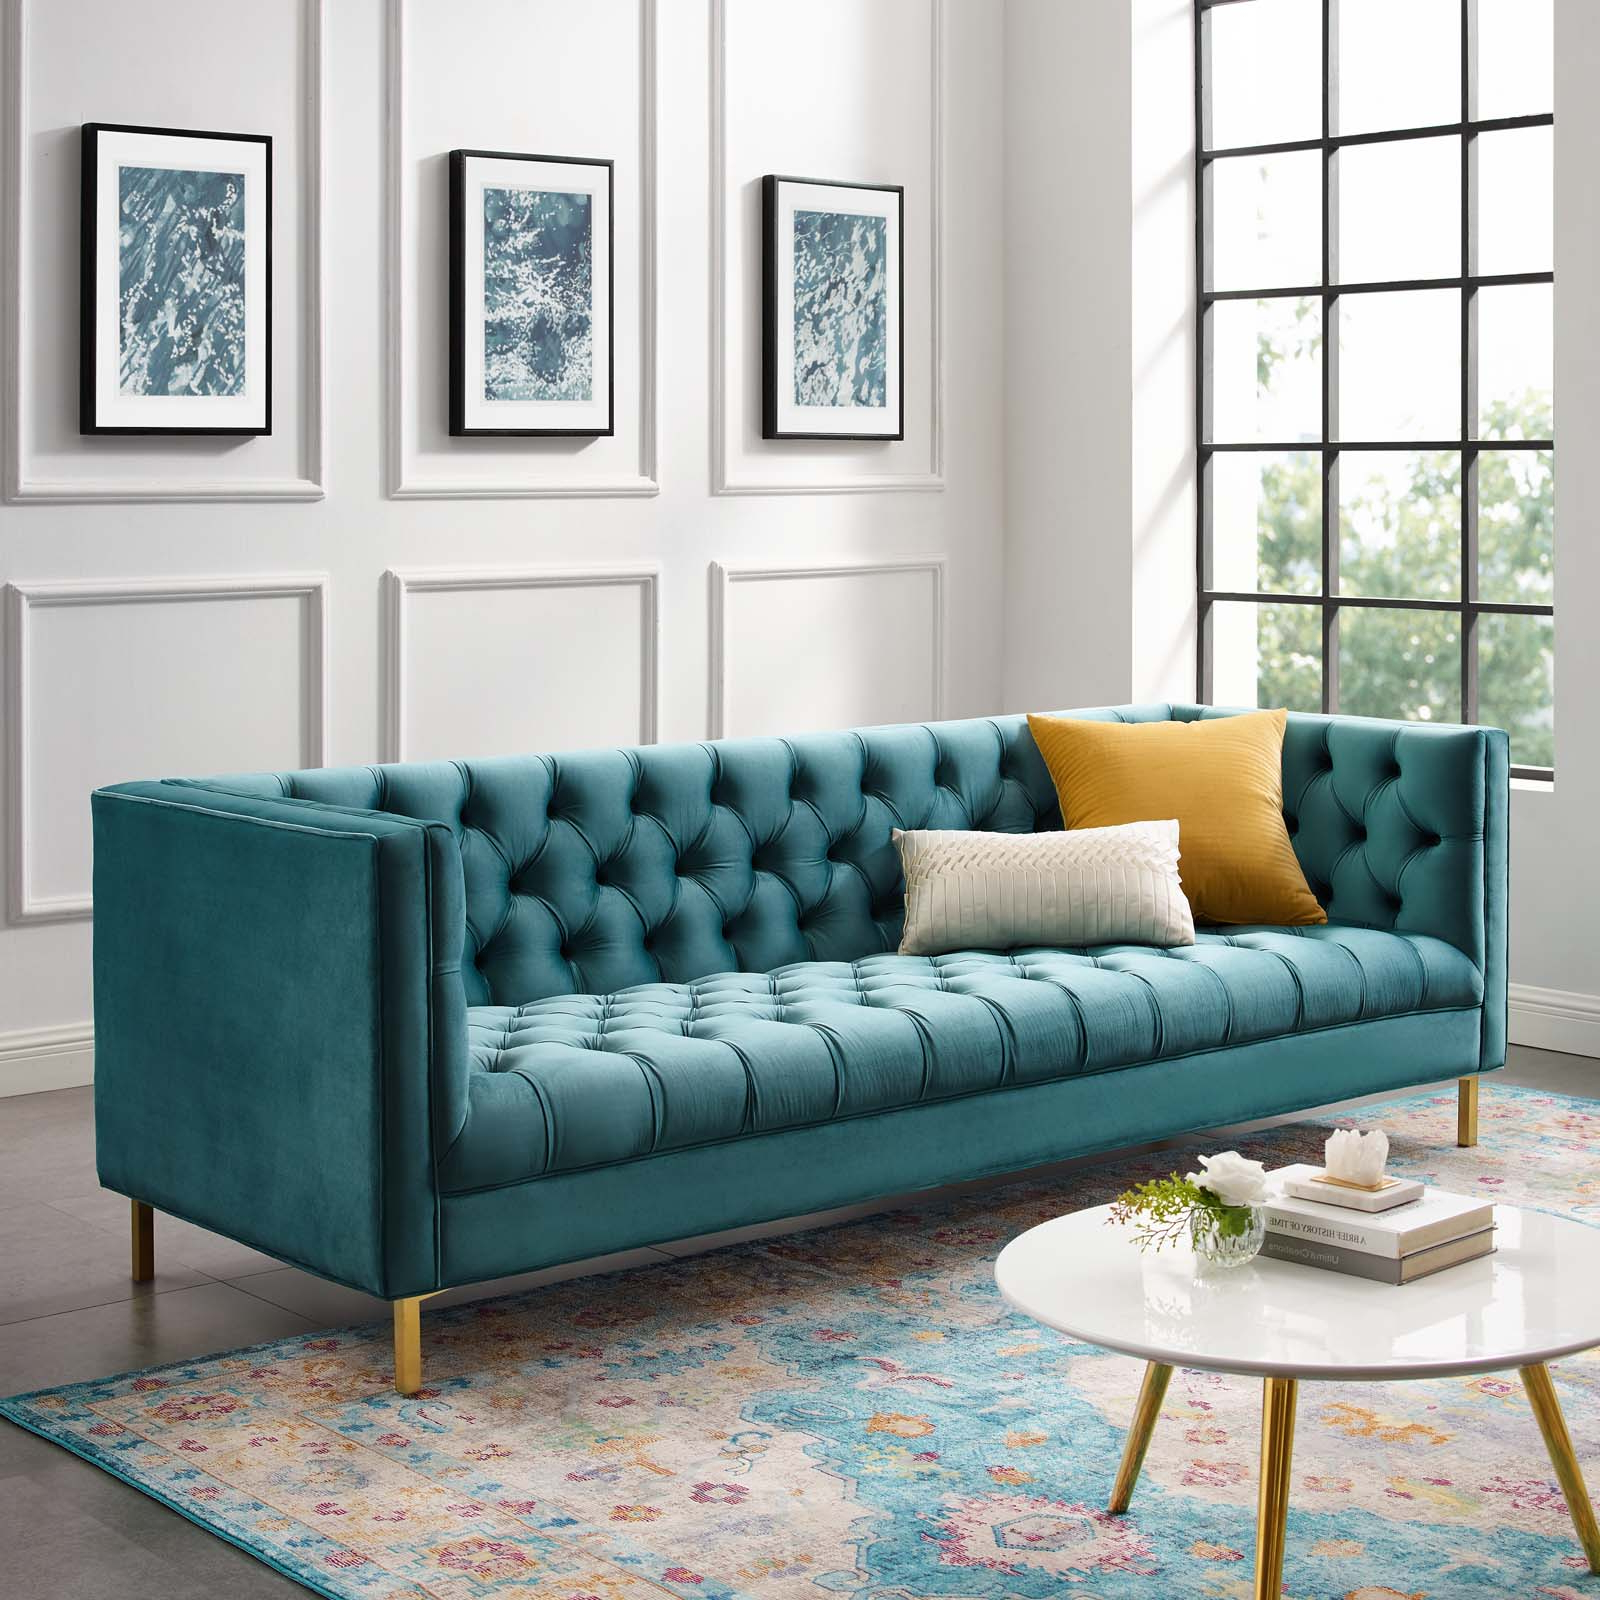 French Seamed Sectional Sofas In Velvet Within Well Known Delight Tufted Button Performance Velvet Sofa (View 9 of 20)